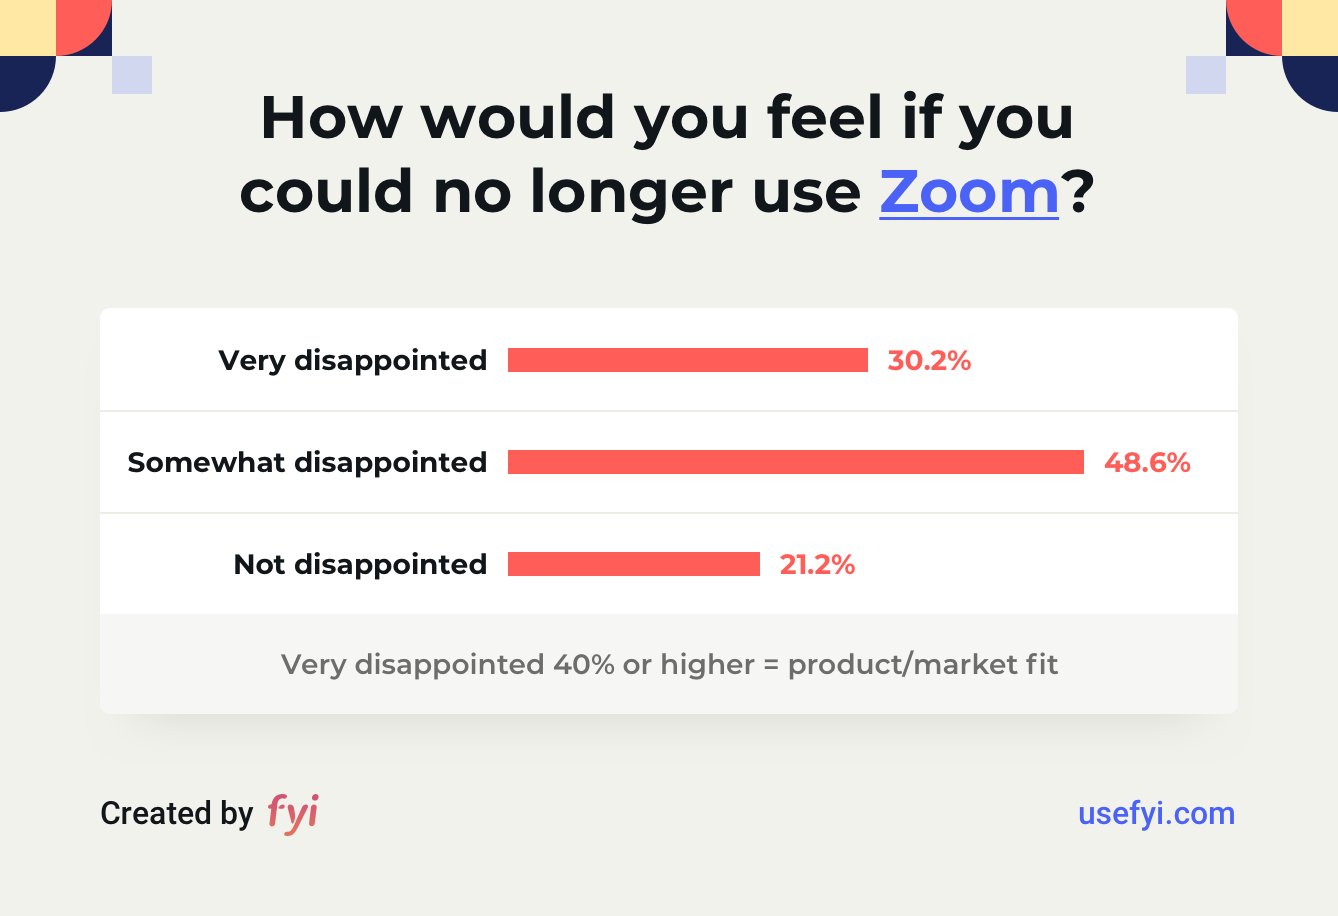 Zoom product-market fit score